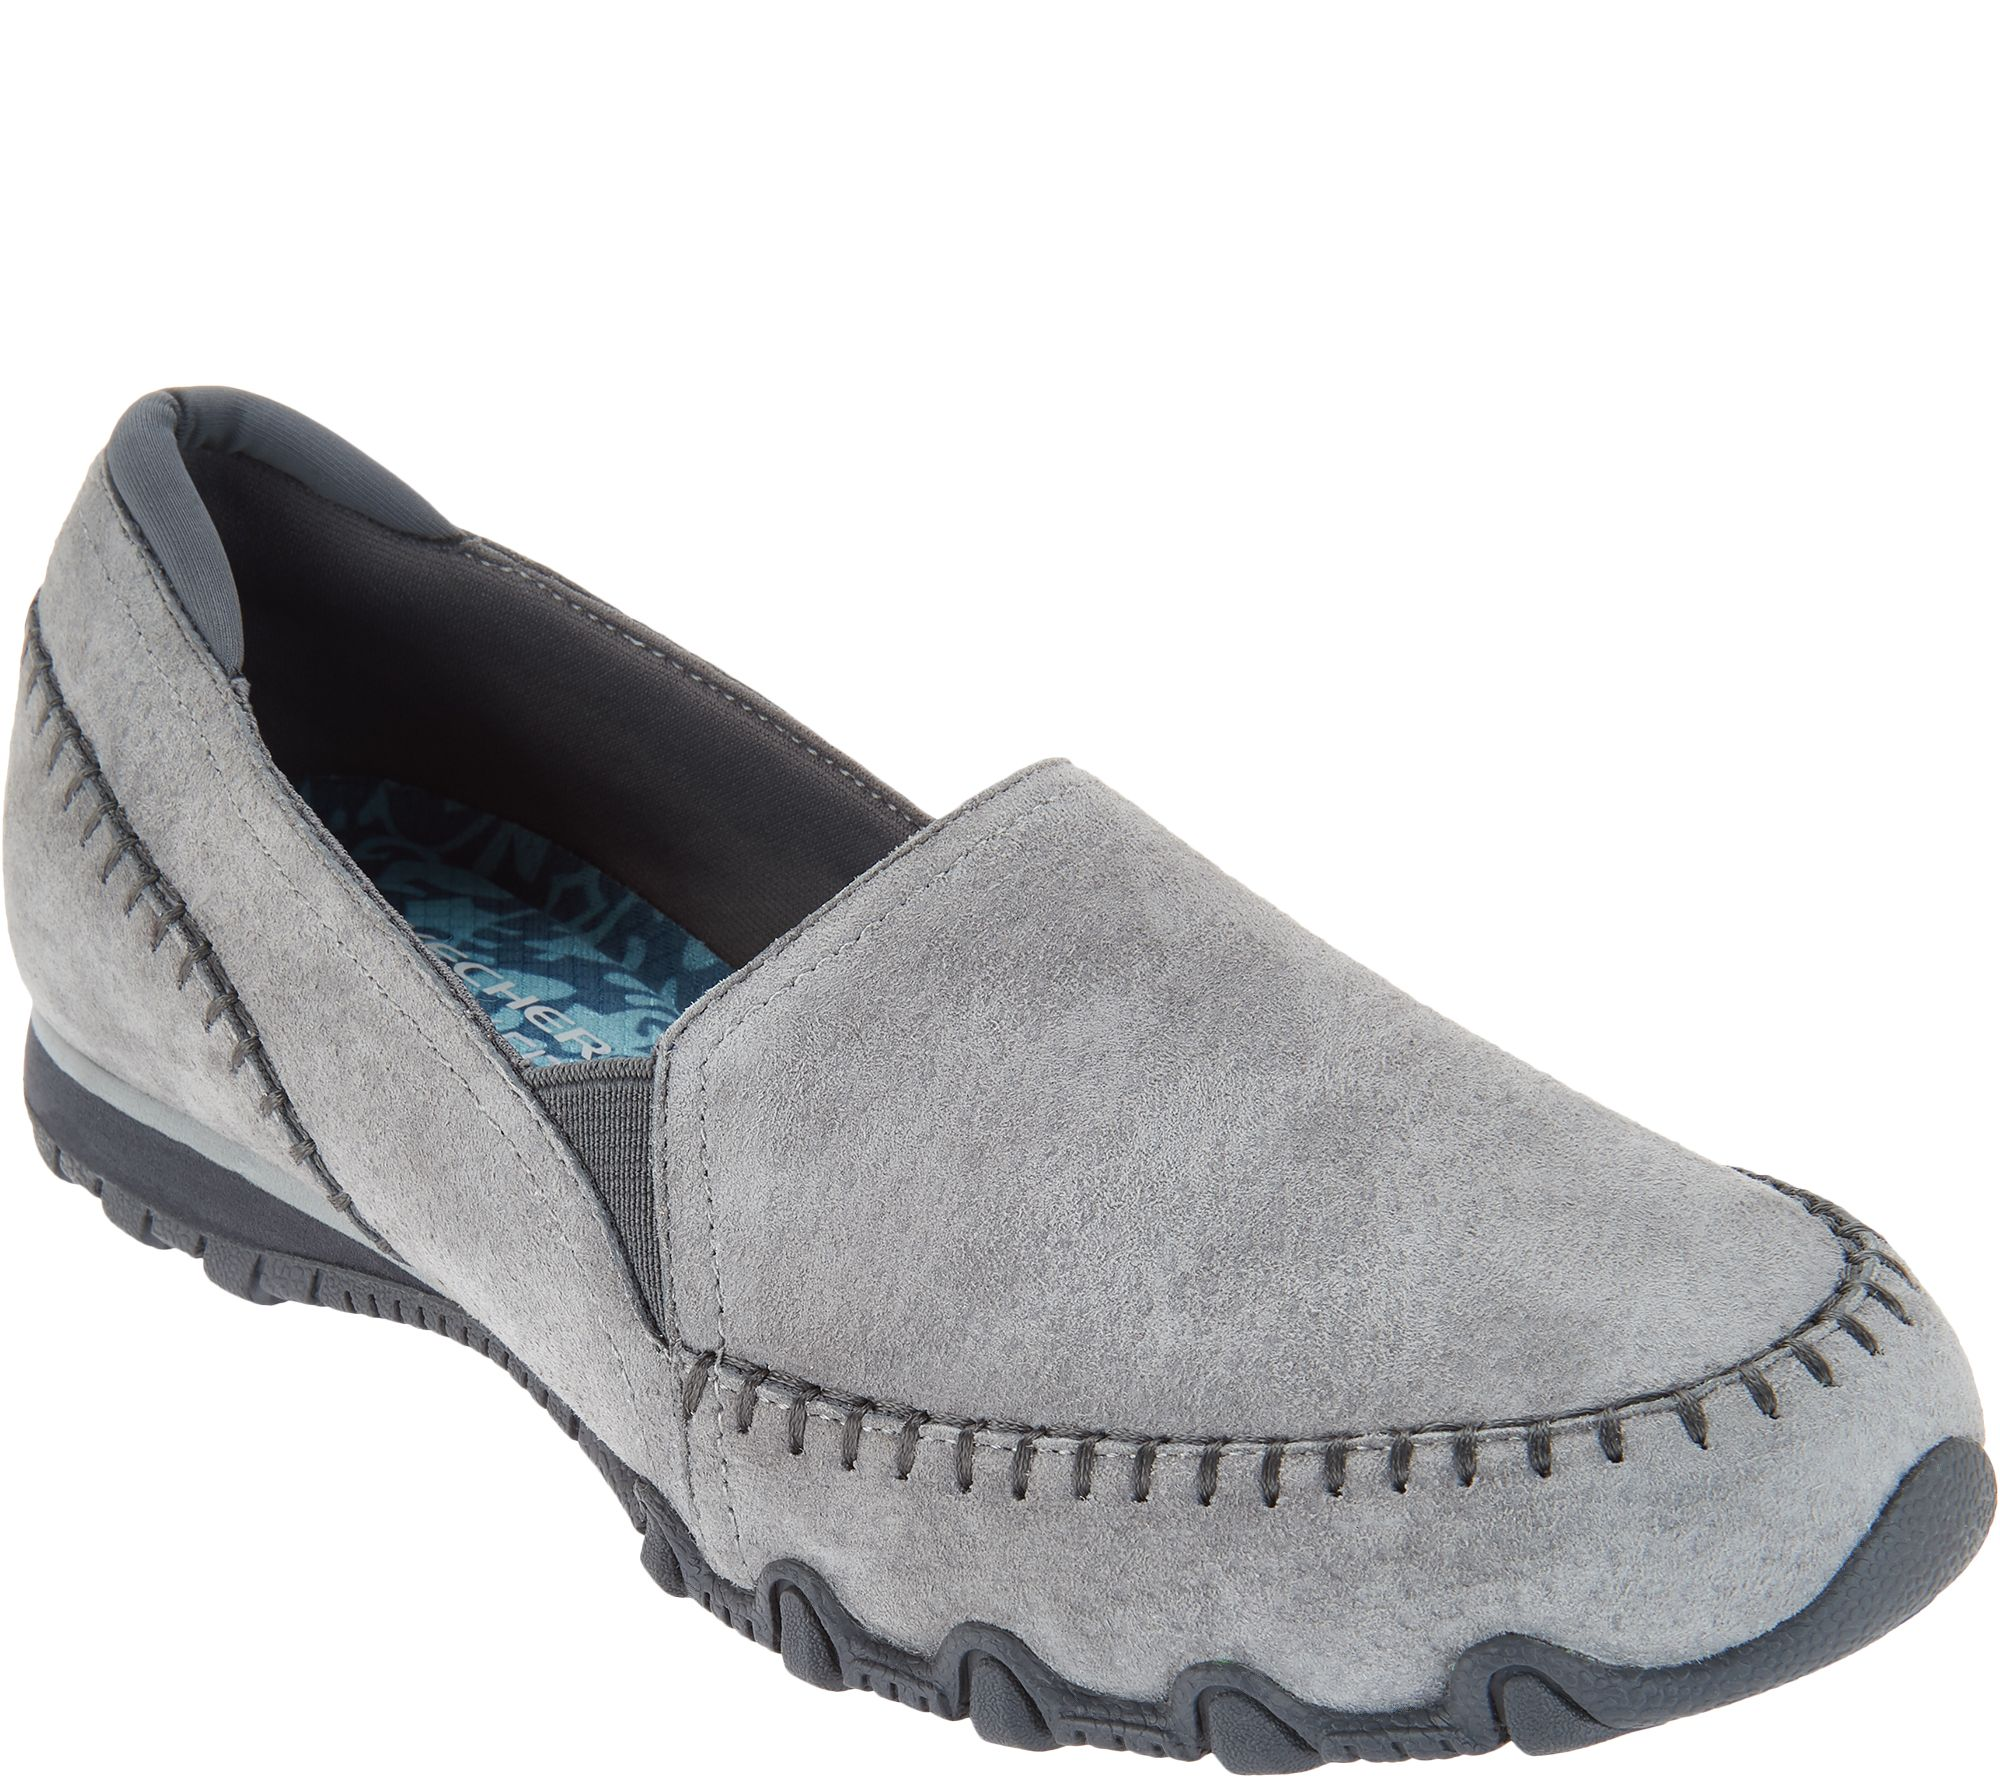 26fdaf04a1df Skechers Relaxed Fit Suede Slip-On Shoes - Alumni - Page 1 — QVC.com